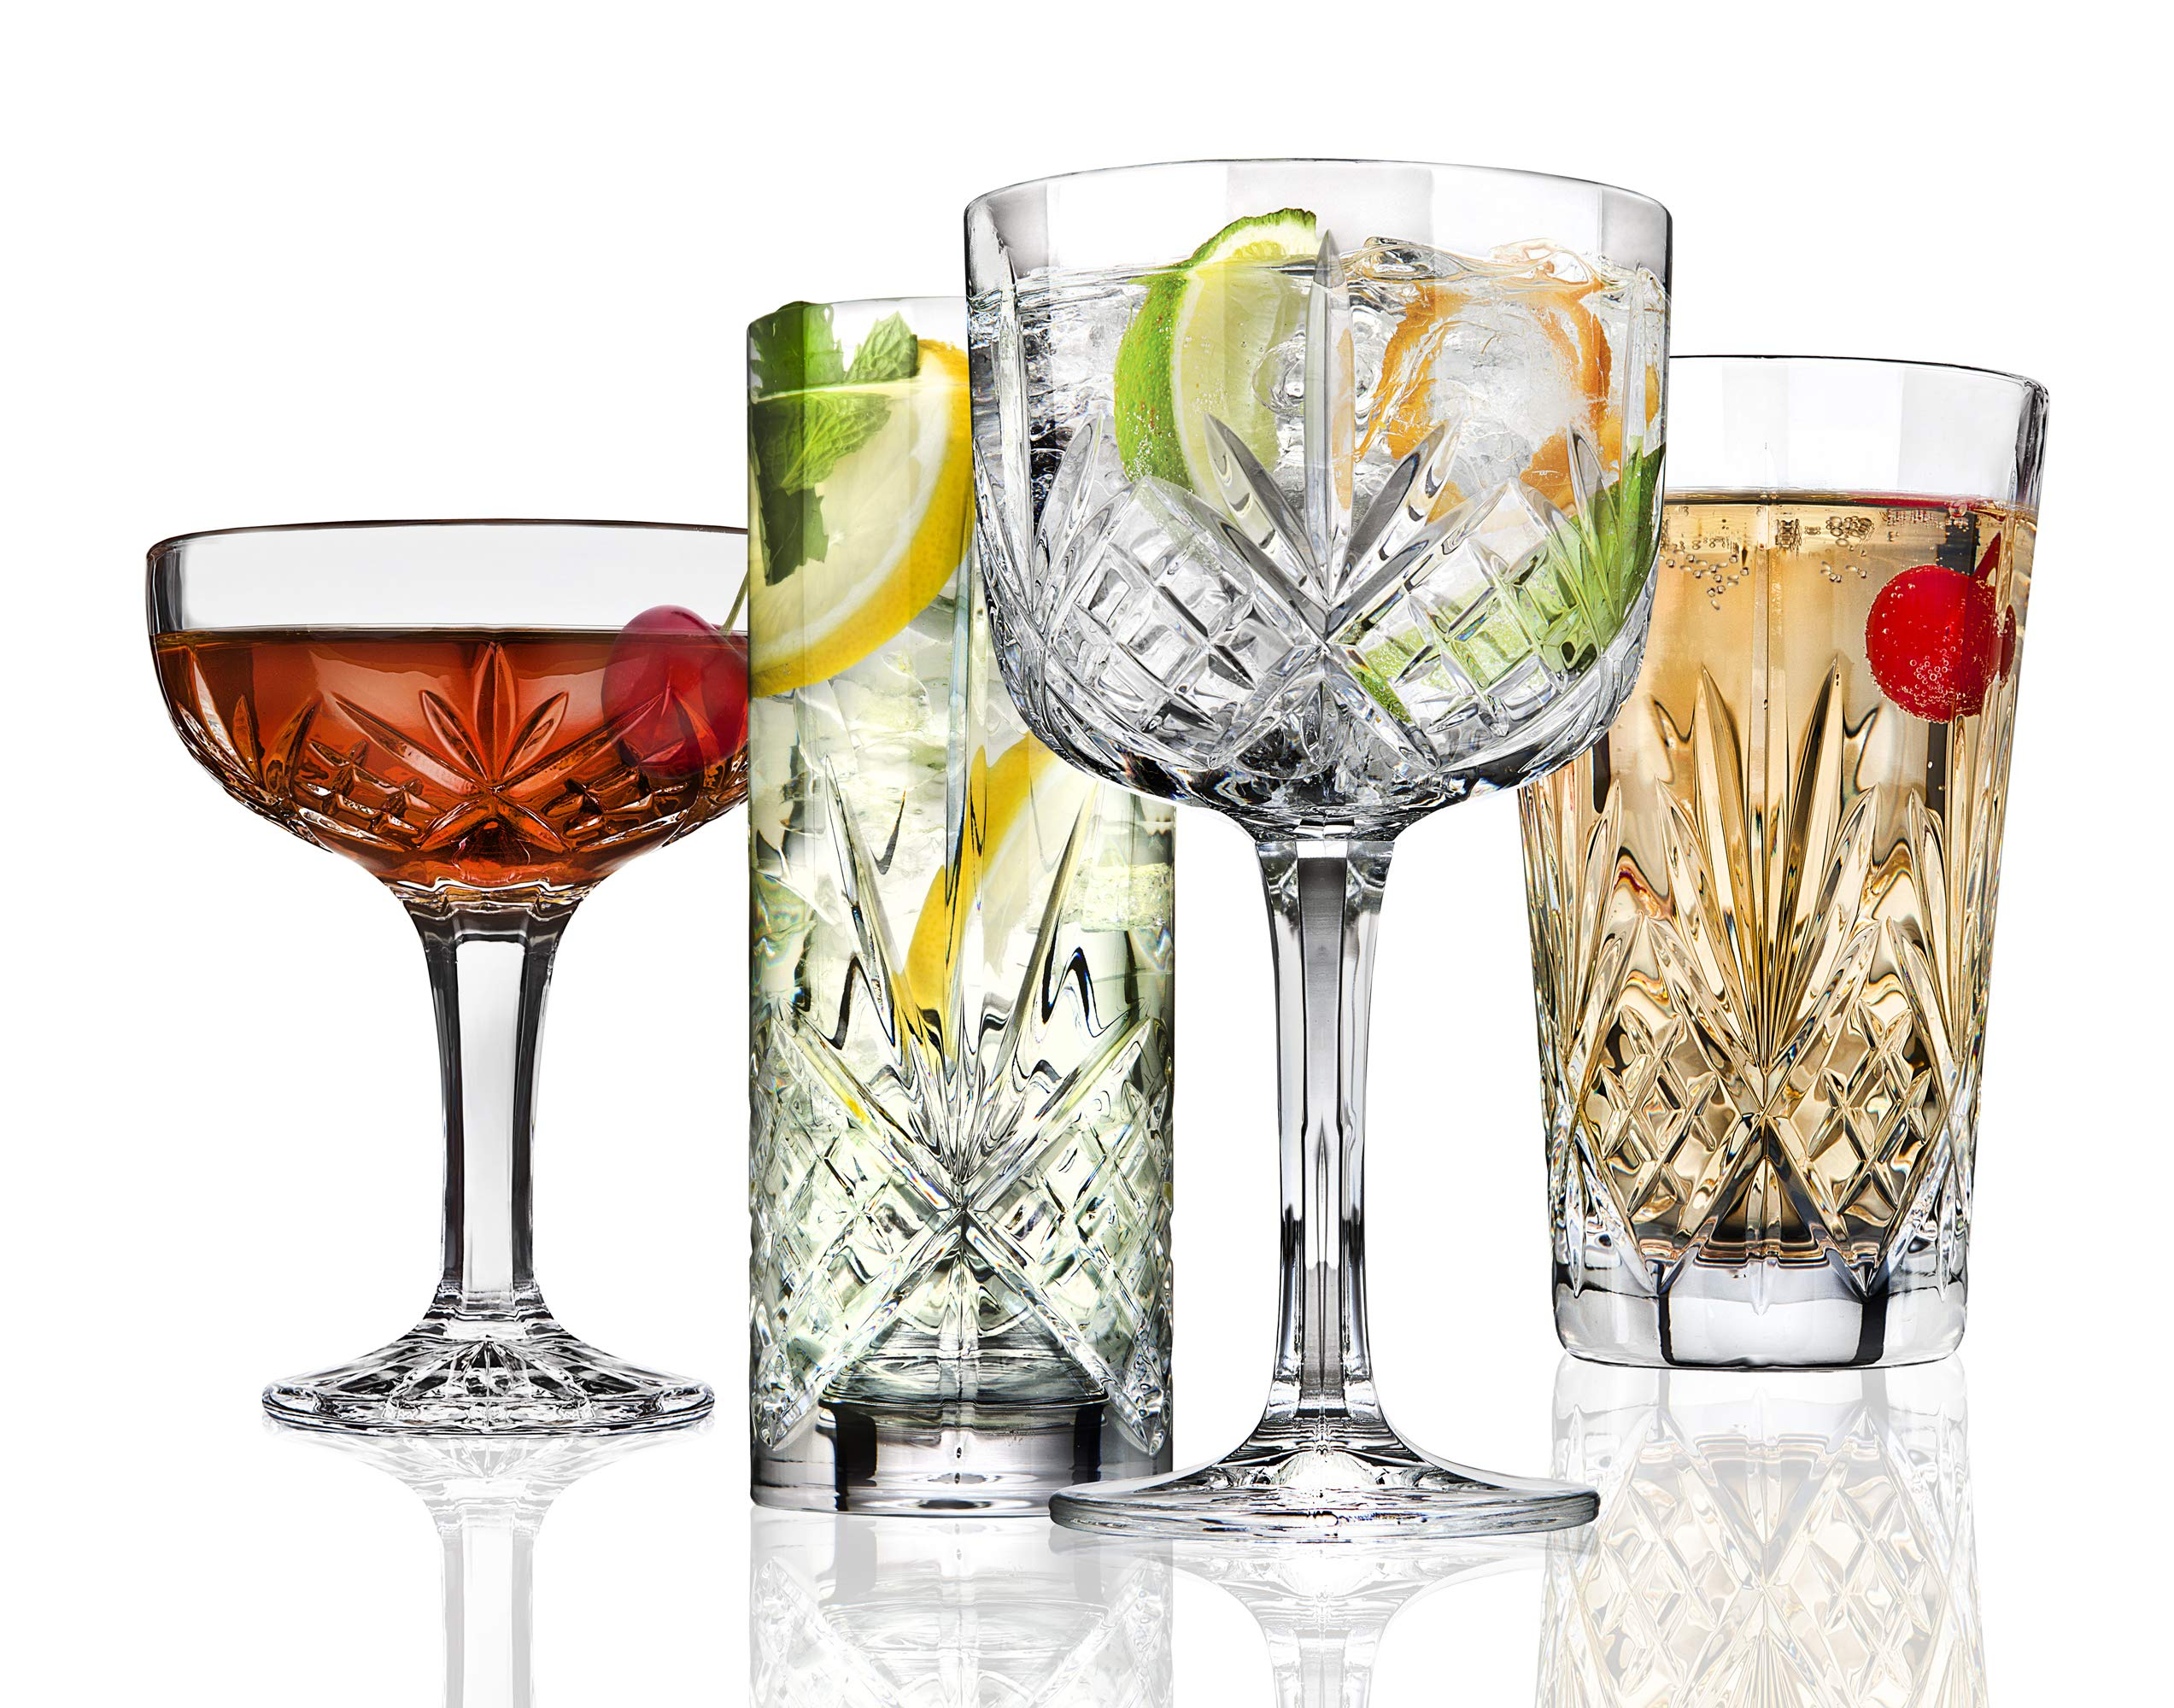 Godinger Barware Drinkware Mixology Set - Gin Glasses, Collins Tall Glasses, Bar Cups and Champagne Coupes - 8 pieces